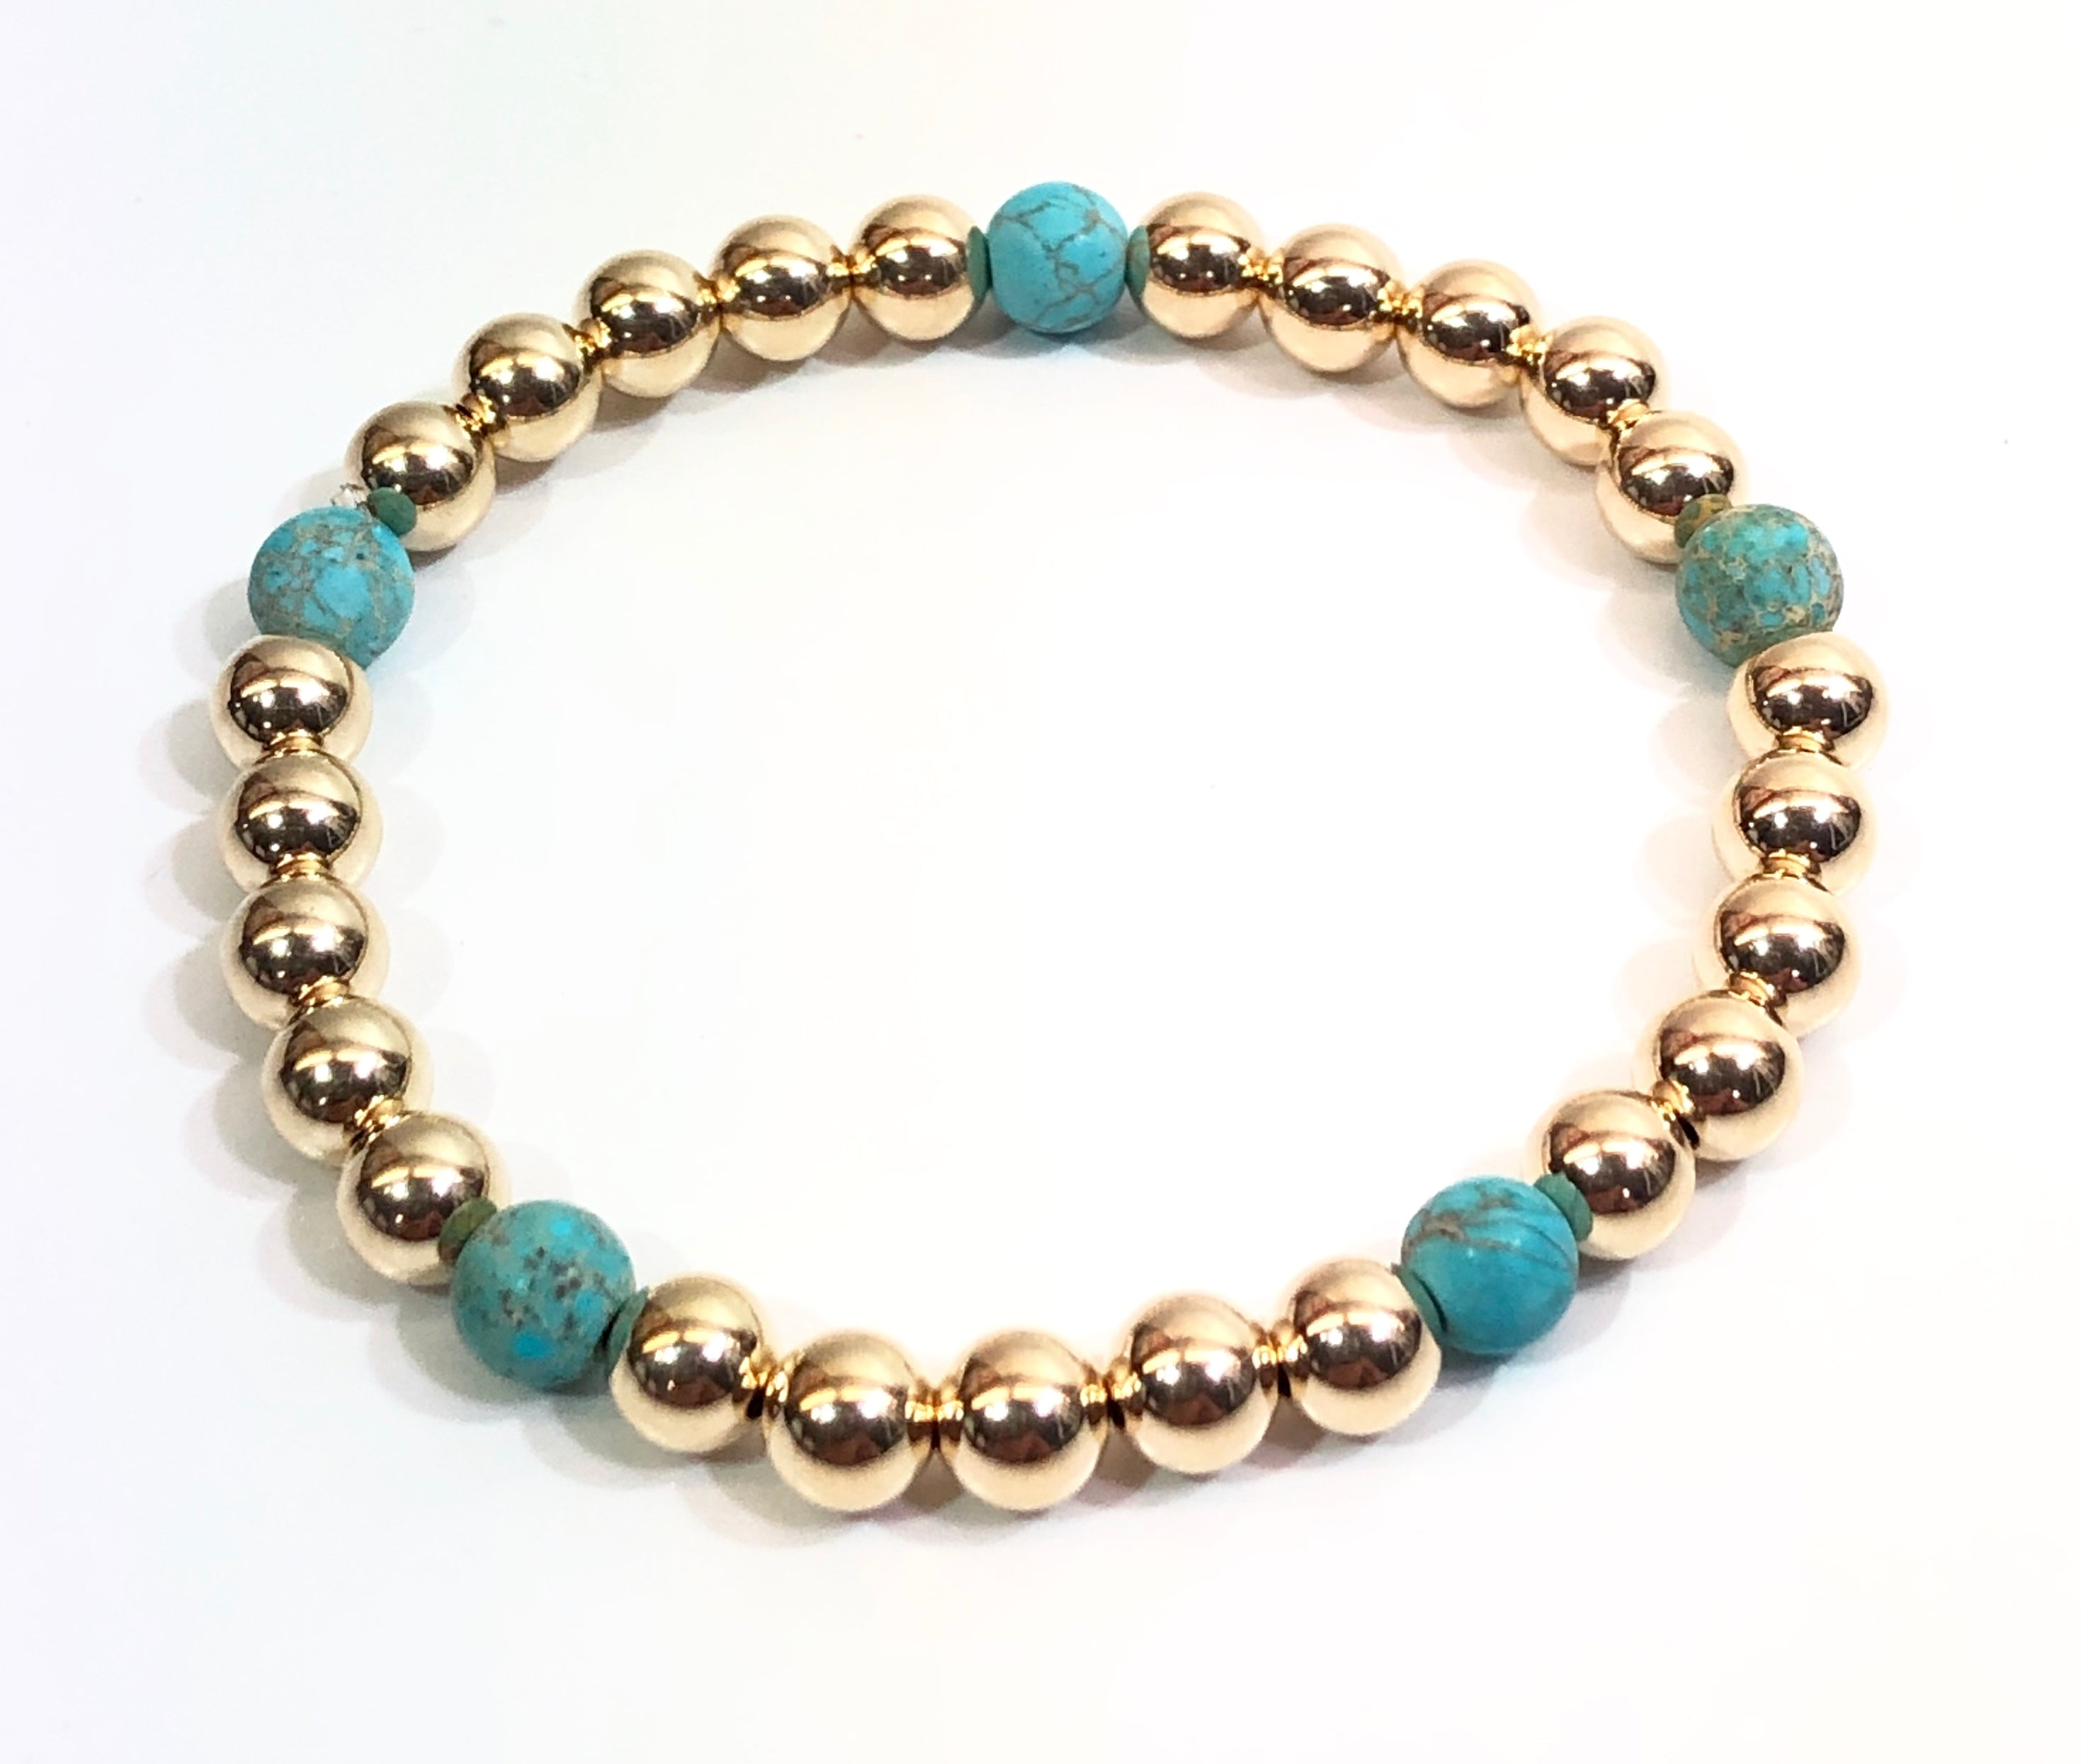 6mm14kt Gold Filled Bead Bracelet with 5 6mm Blue Jasper Beads